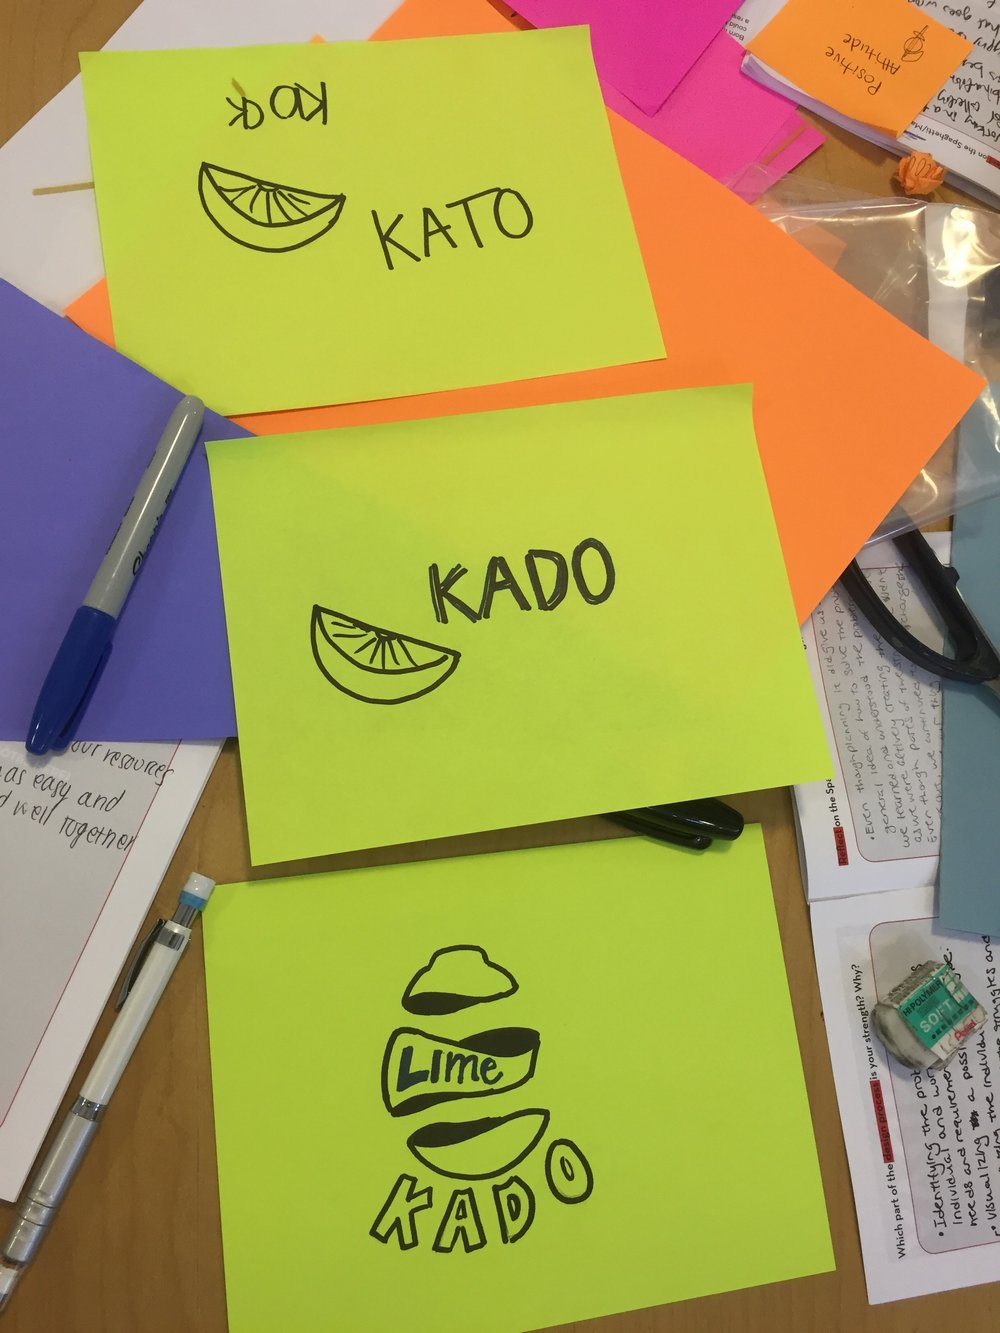 Post it notes of Kato